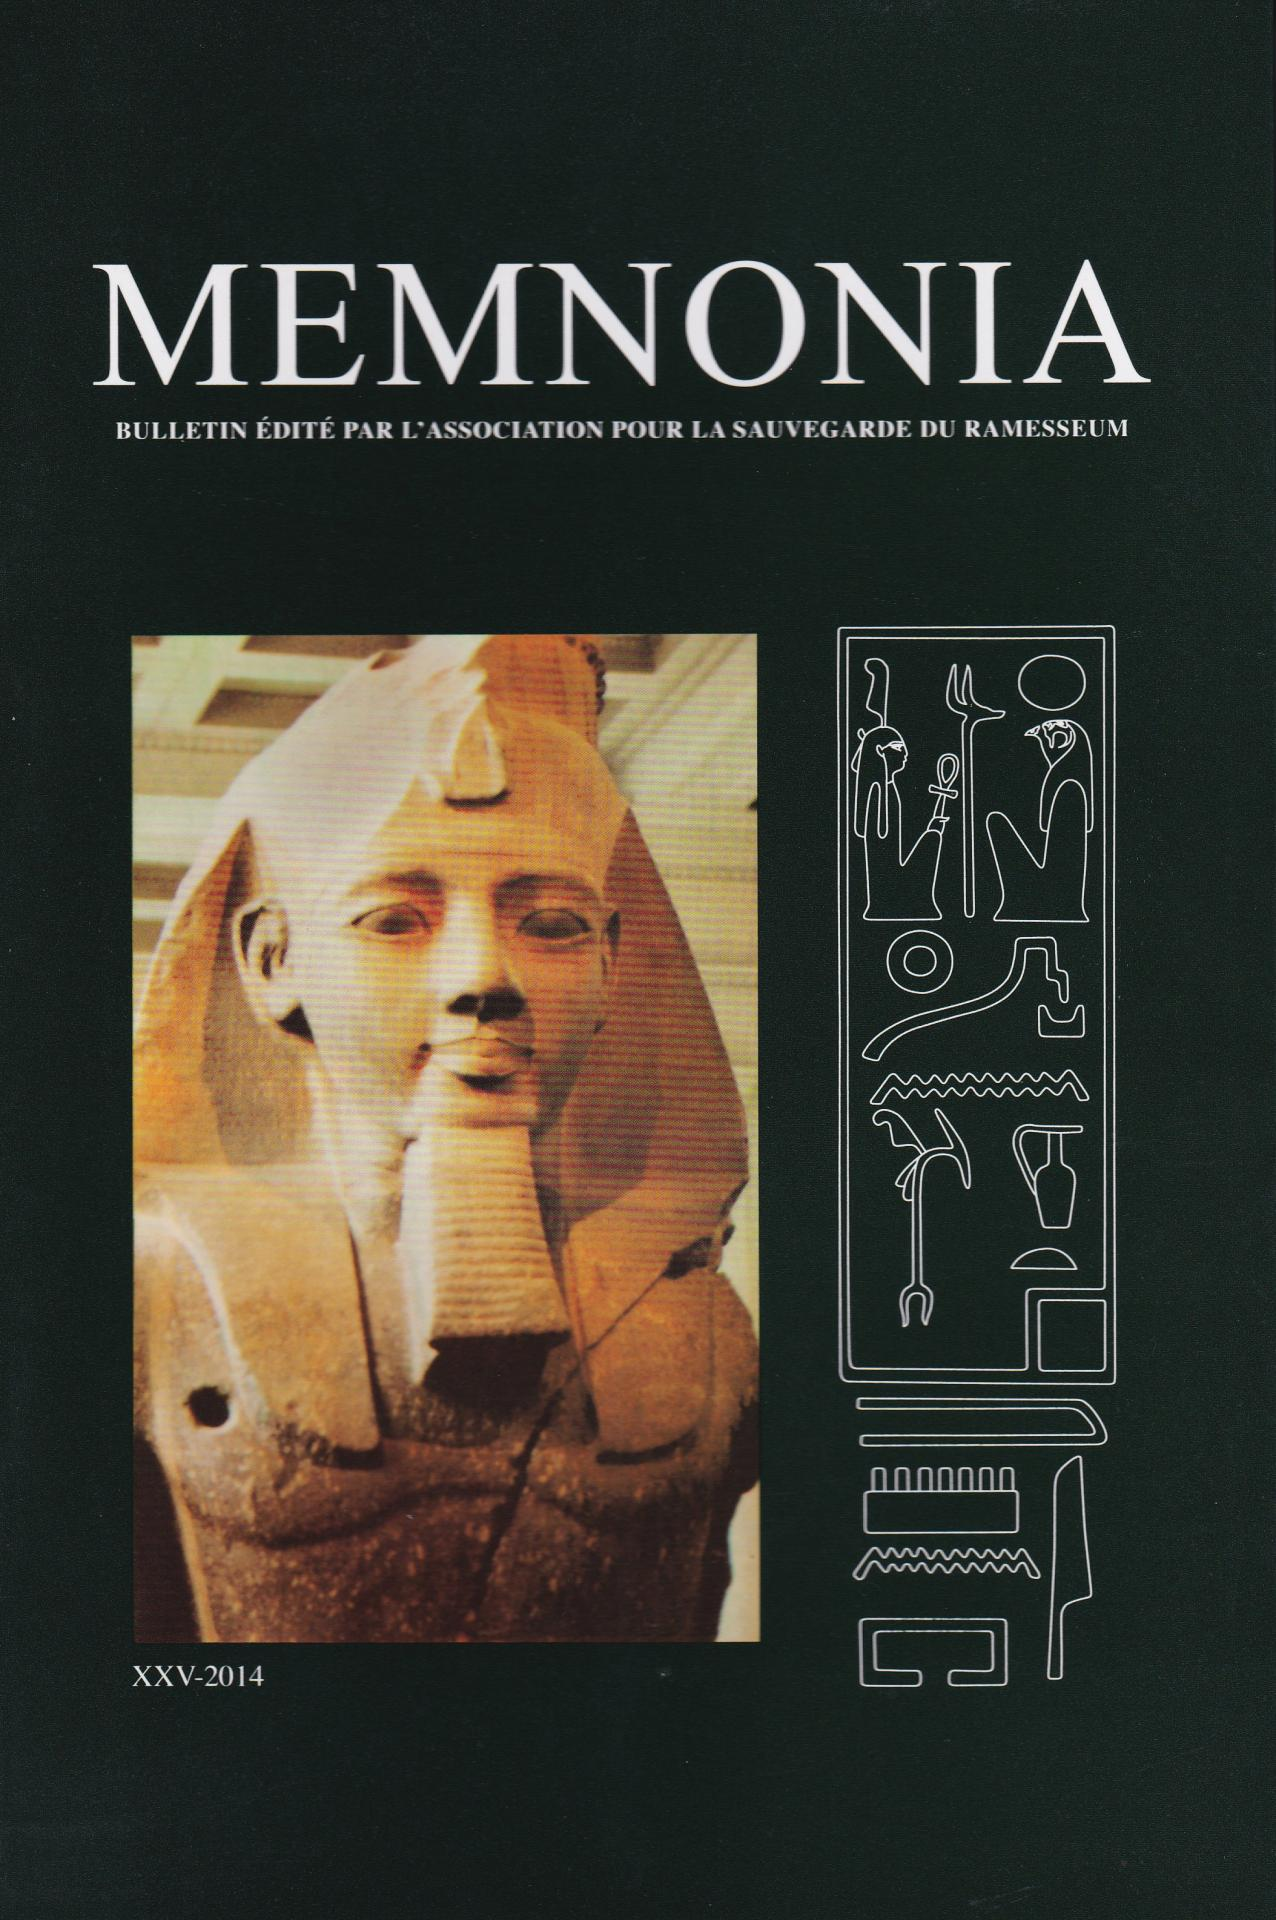 Memnonia